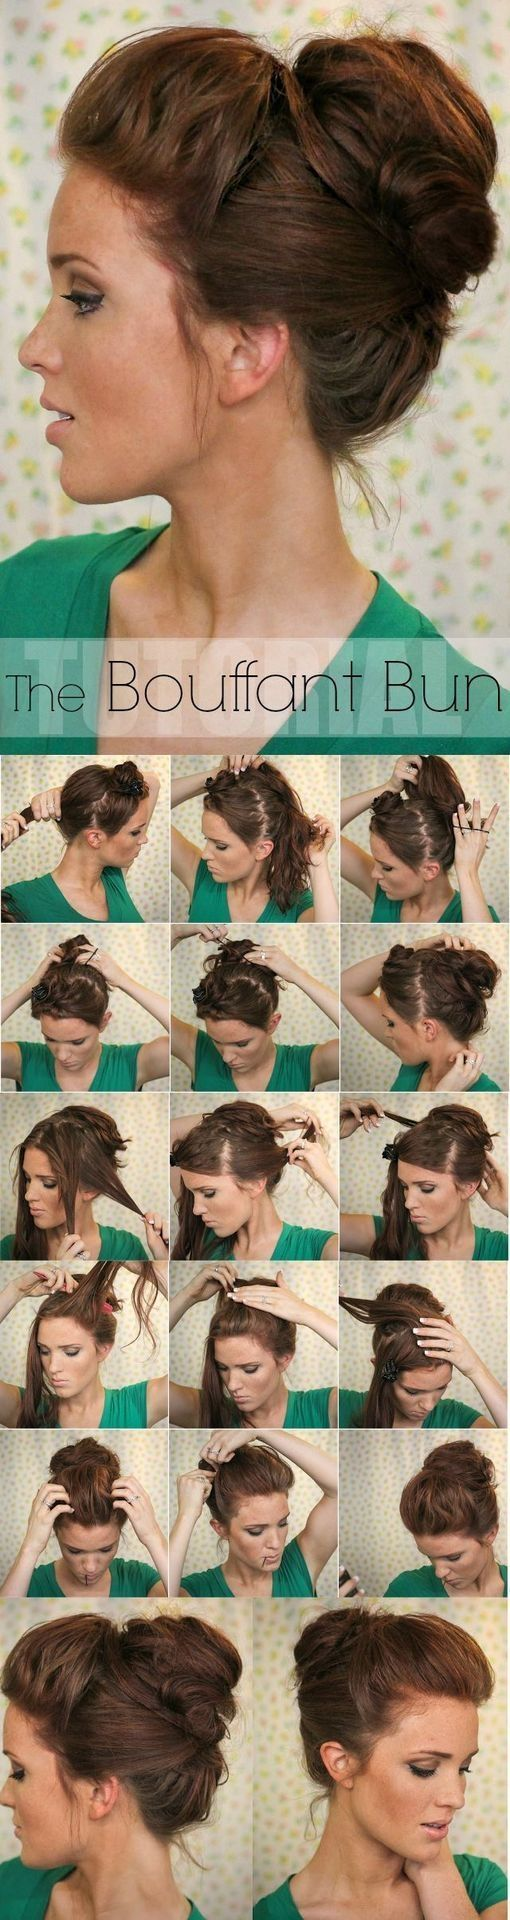 Knotted Bun Updo and Simple Bun Hairstyle Tutorials. Someone please do this to my hair! D: by PearForTheTeacher